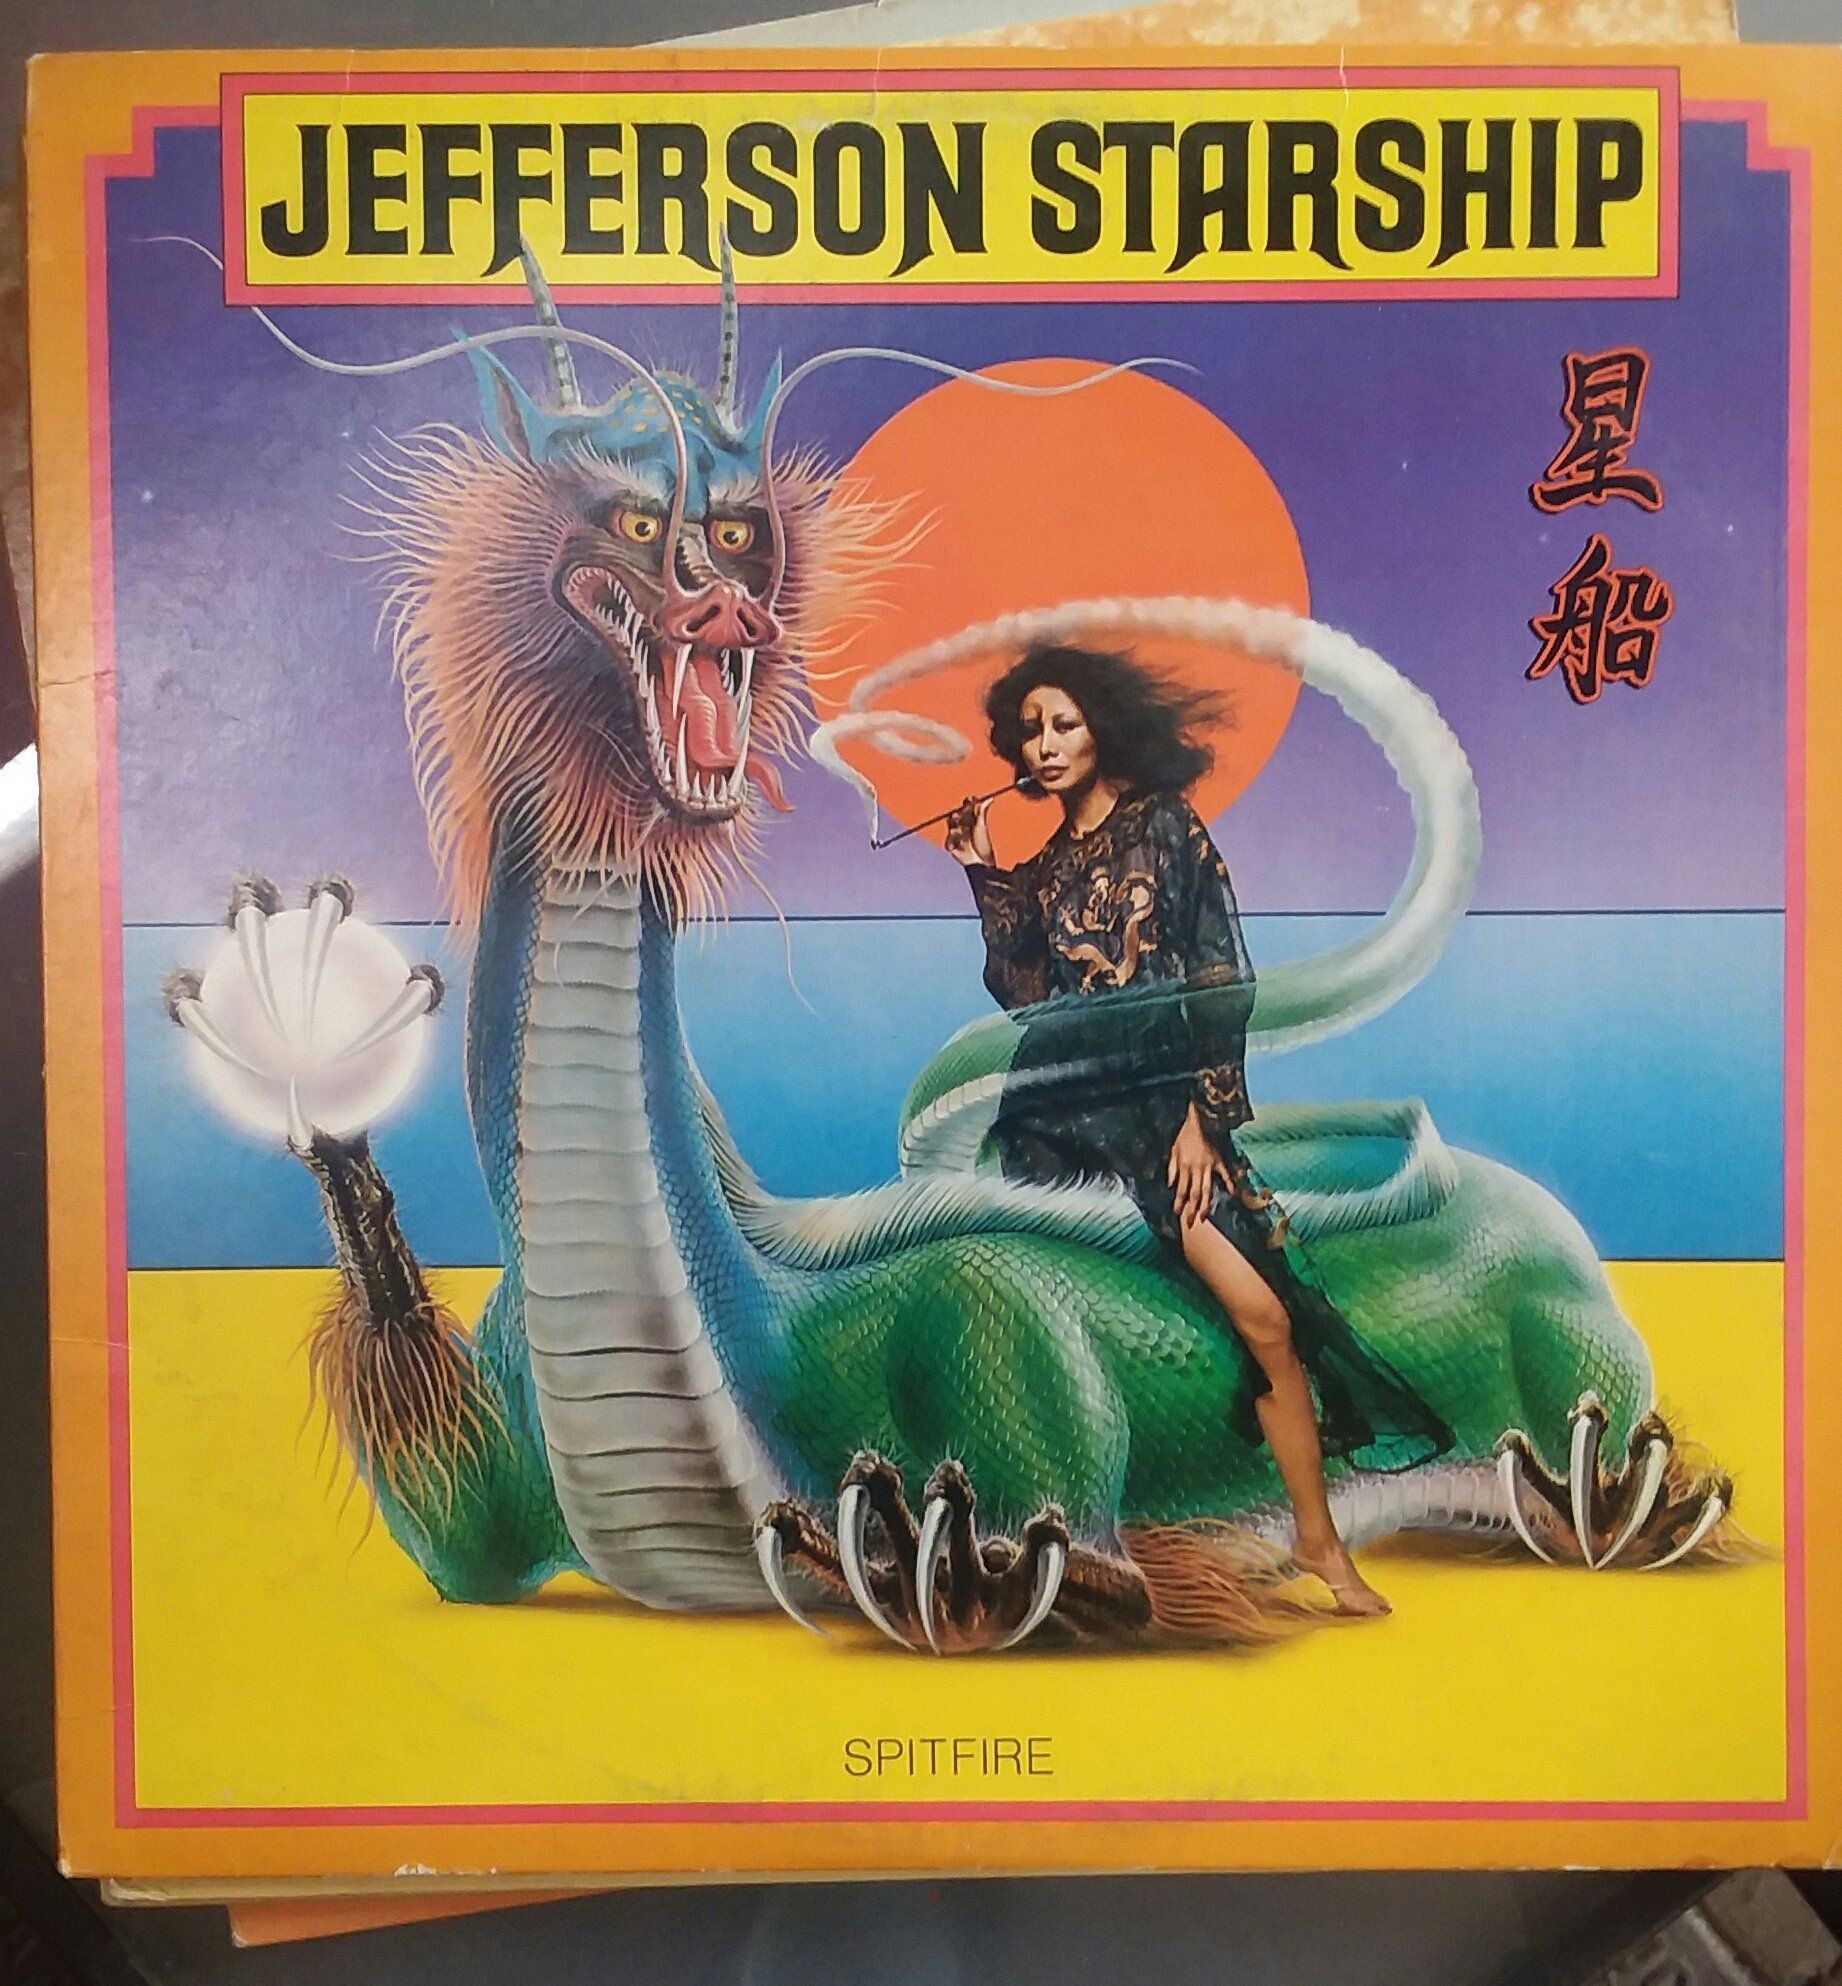 Jefferson Starship, Spitfire, Vintage Record Album, Vinyl LP, Classic Rock and Roll Music, San Francisco Band, Soft Rock Music by VintageCoolRecords on Etsy